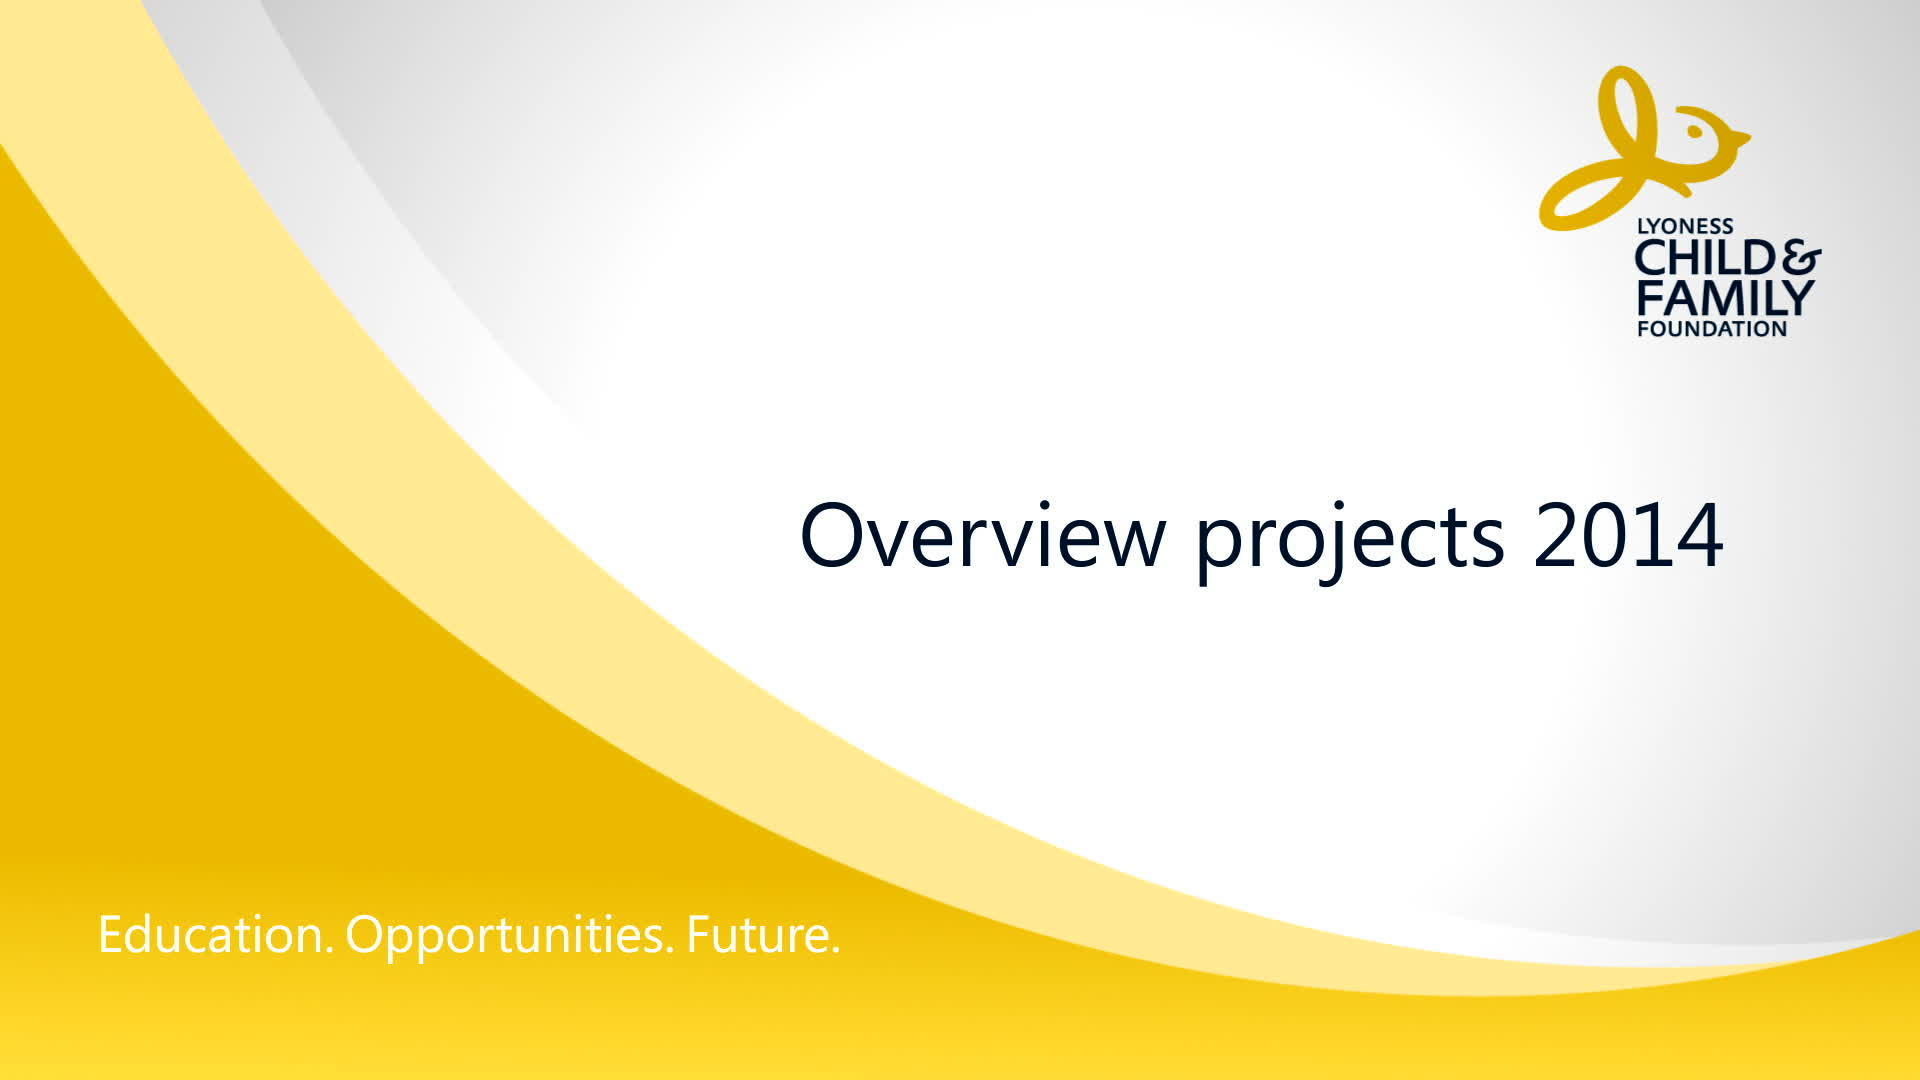 Child&Family Foundation - Overview projects 2014